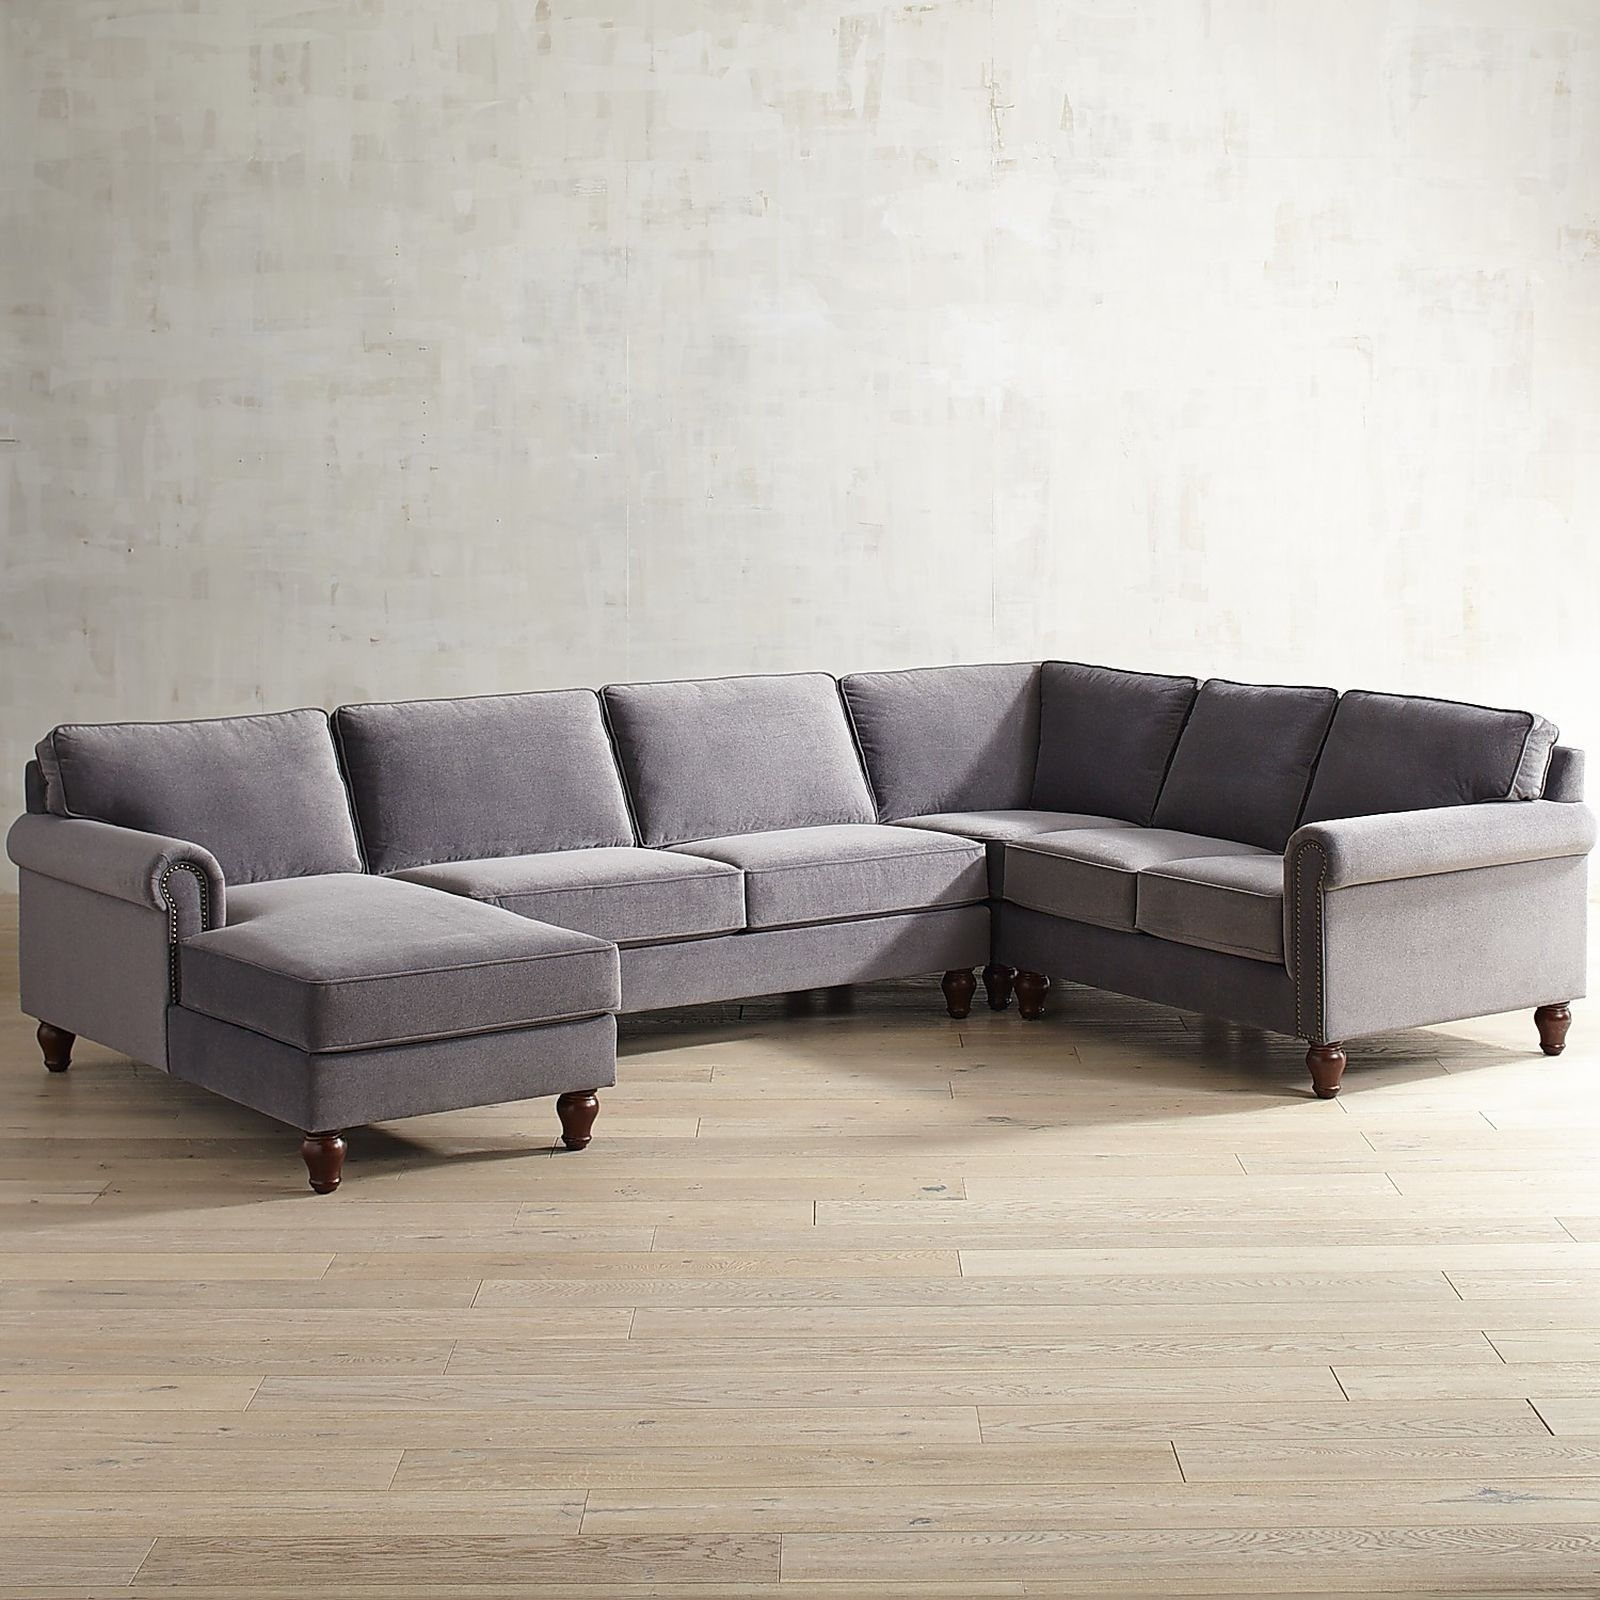 Liquidation Sale Mississauga 2019 Popular Canada Sale Sectional Sofas